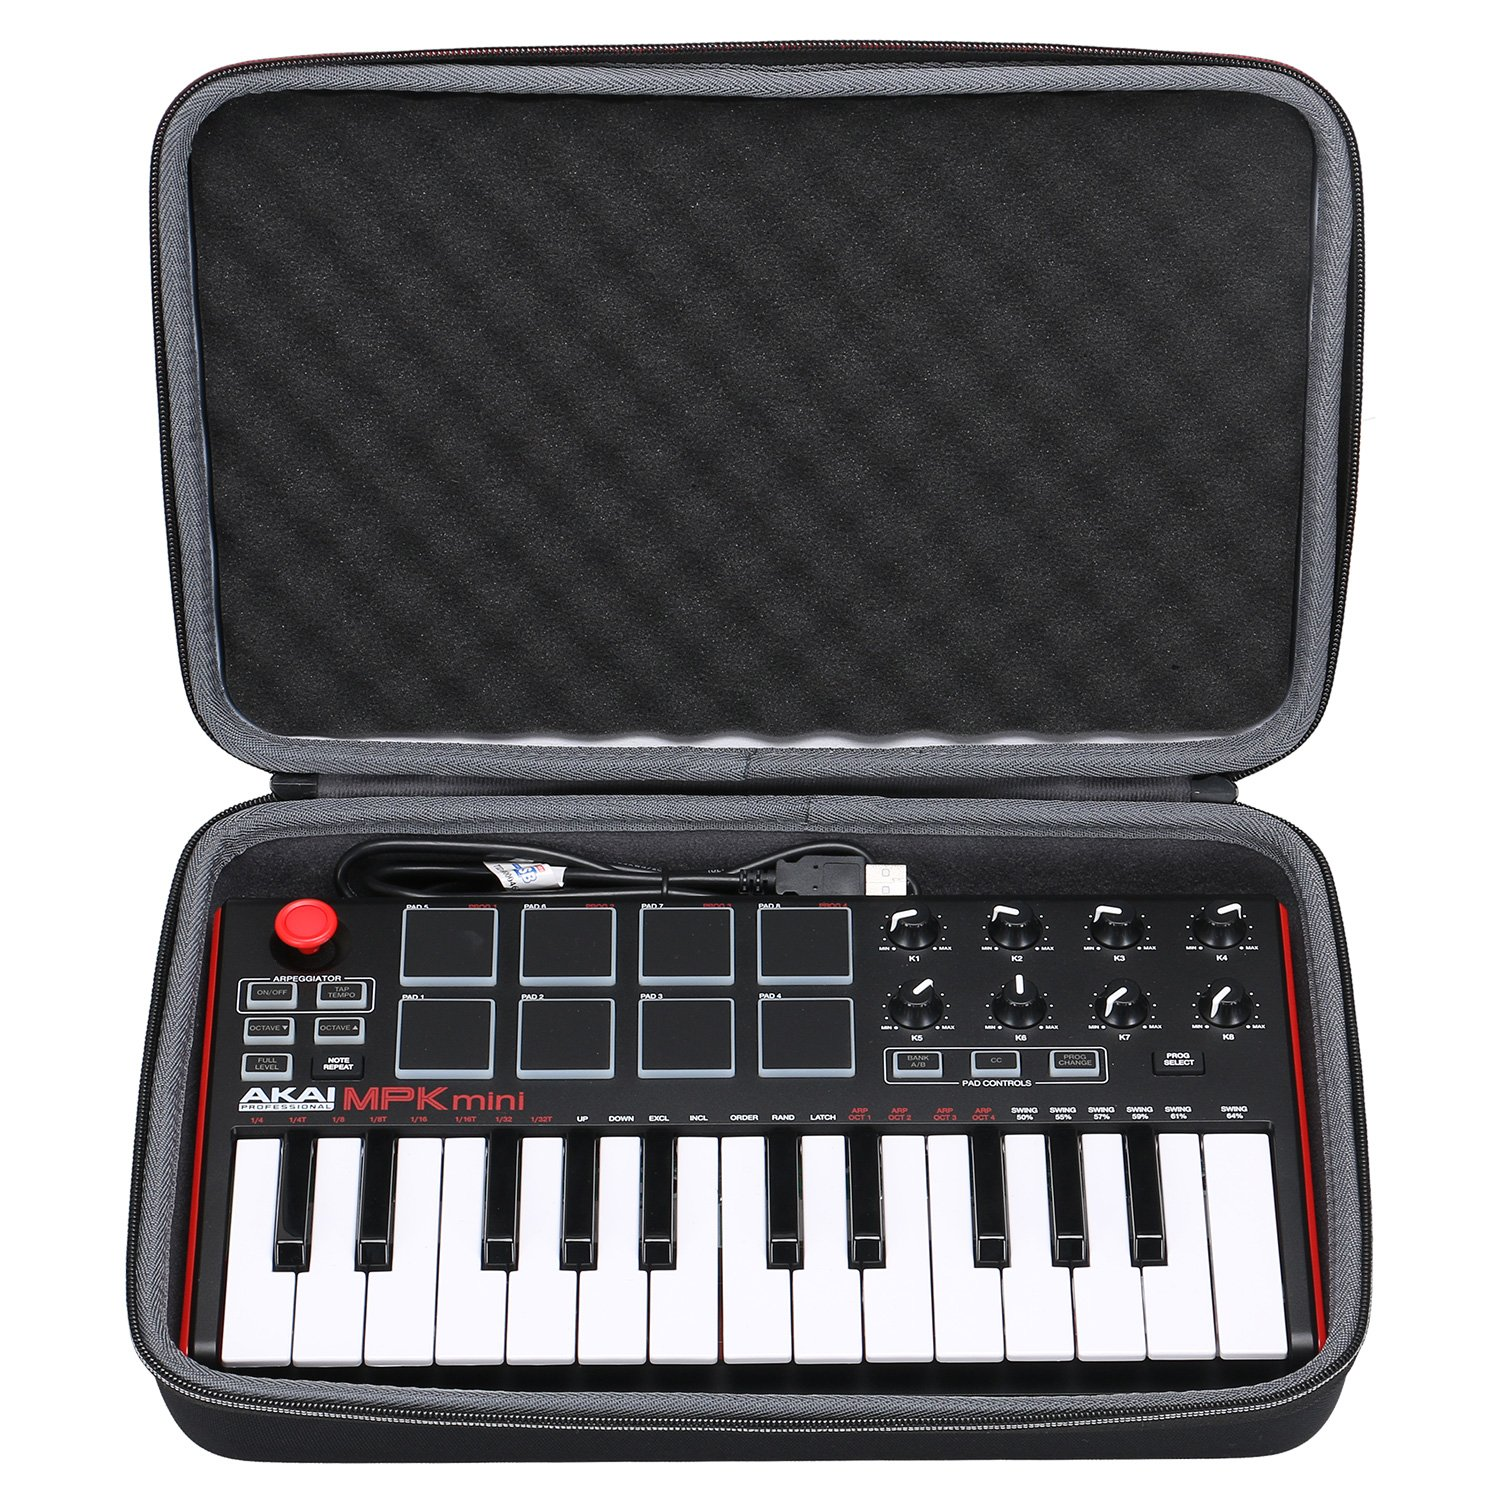 Akai Professional MPK Mini MKII Case, XANAD Case EVA Hard for Akai Professional MPK Mini MKII | 25-Key Ultra-Portable USB MIDI Drum Pad & Keyboard zdxtdmj026